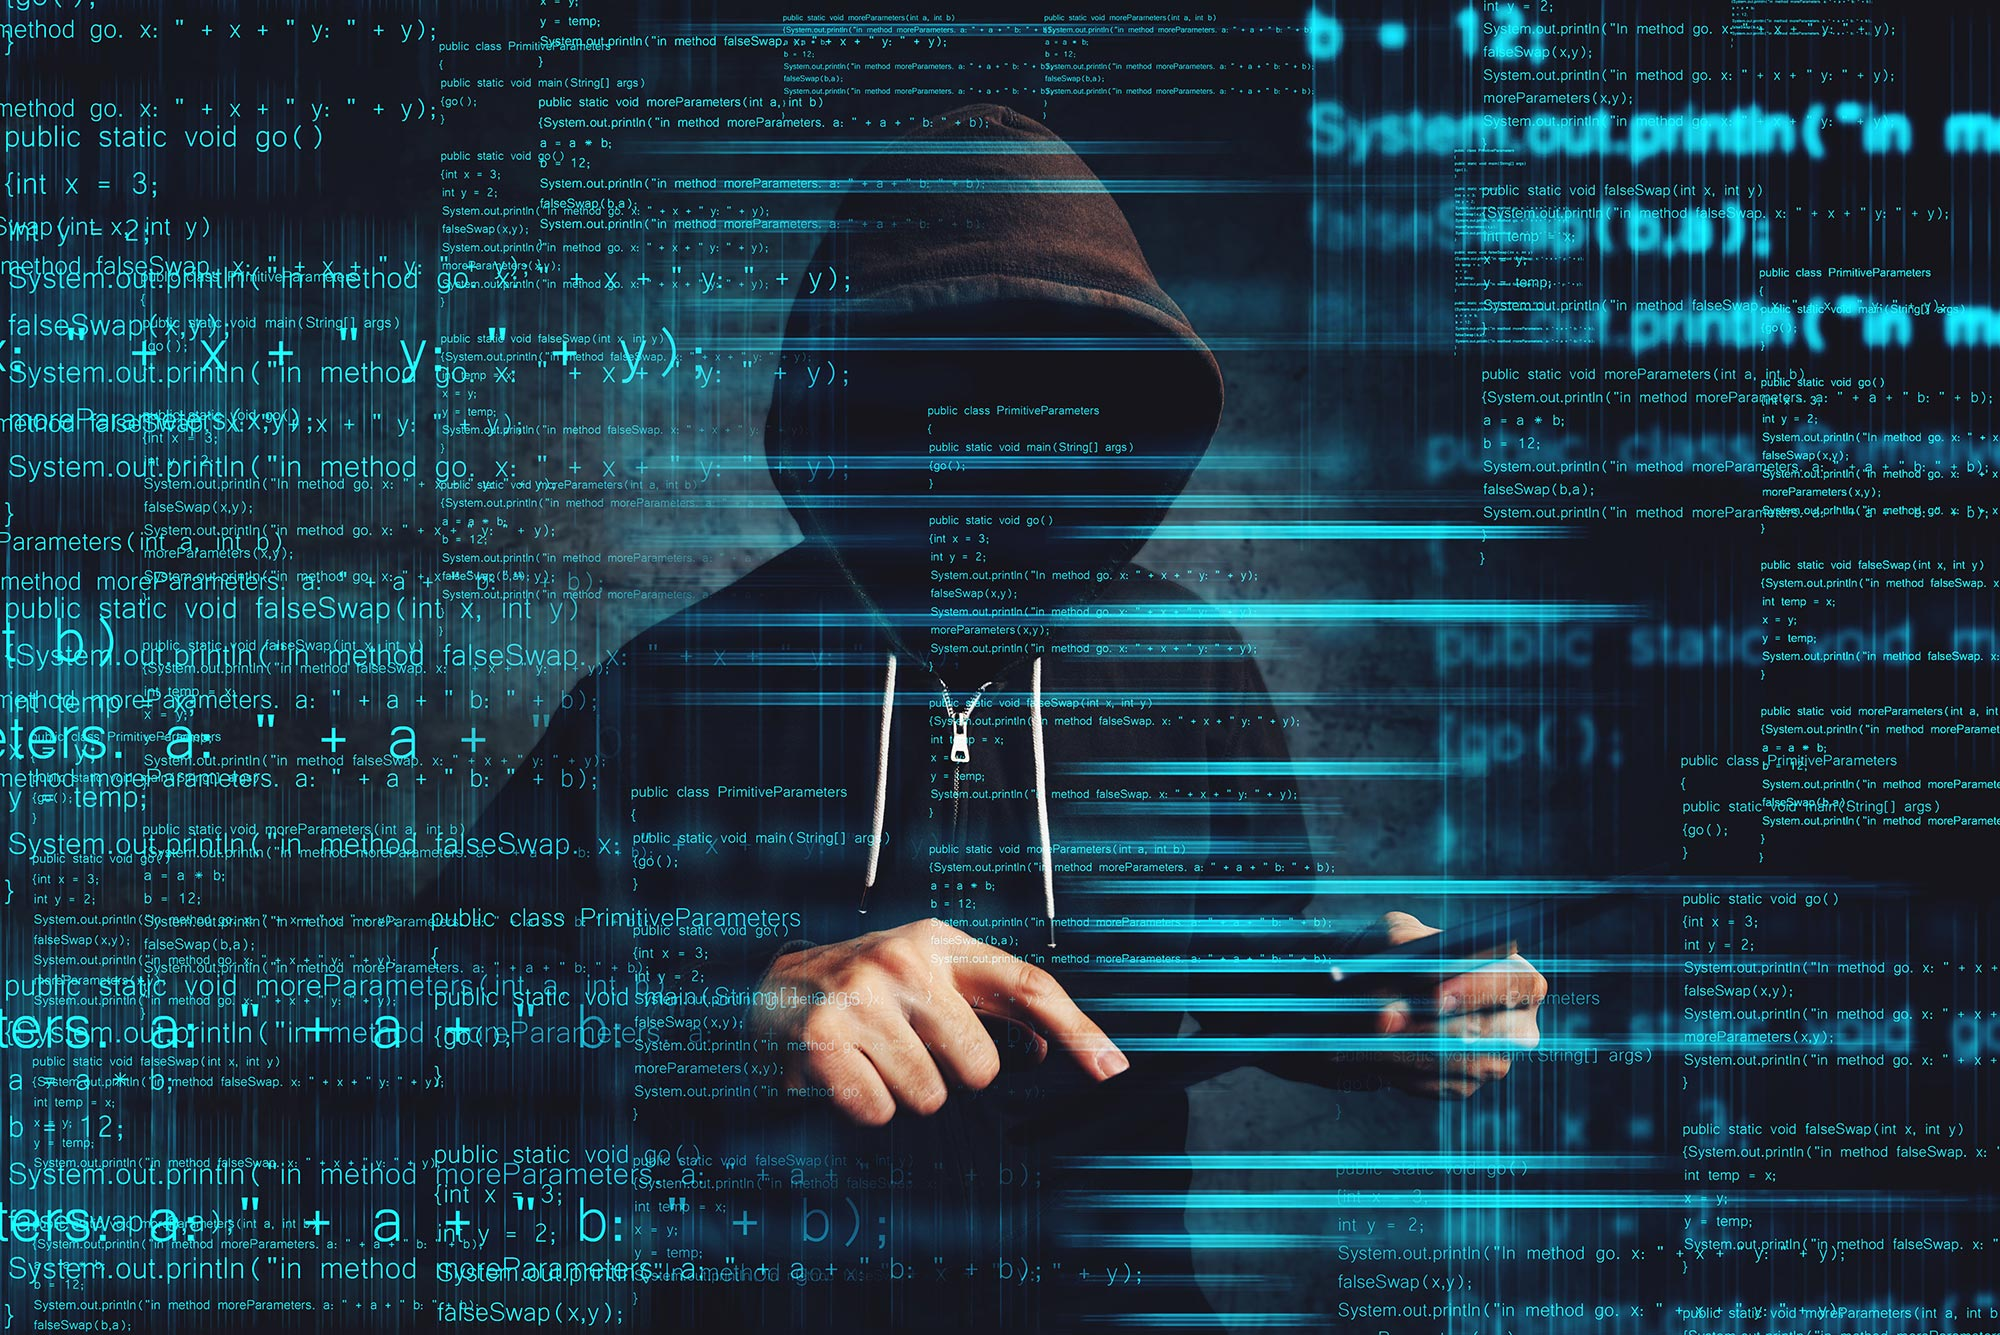 NRB begins search for hackers threatening to hack systems of 15 banks in Viber